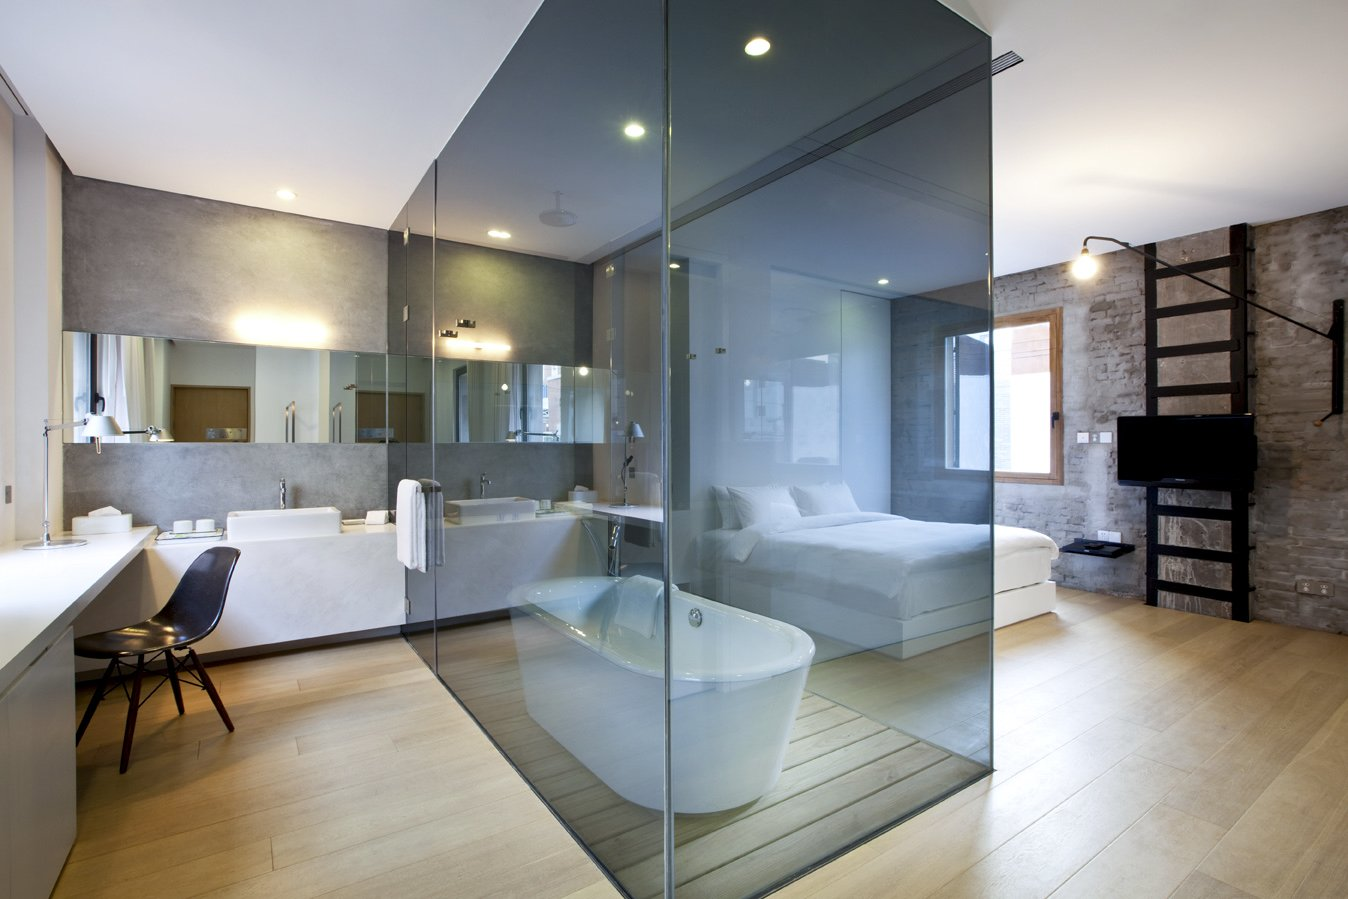 Bath Room, Freestanding Tub, and Soaking Tub The interiors at Waterhouse at South Bund in Shanghai, China  Photo 12 of 24 in 12 Modern Hotels in Historic Buildings Around the World